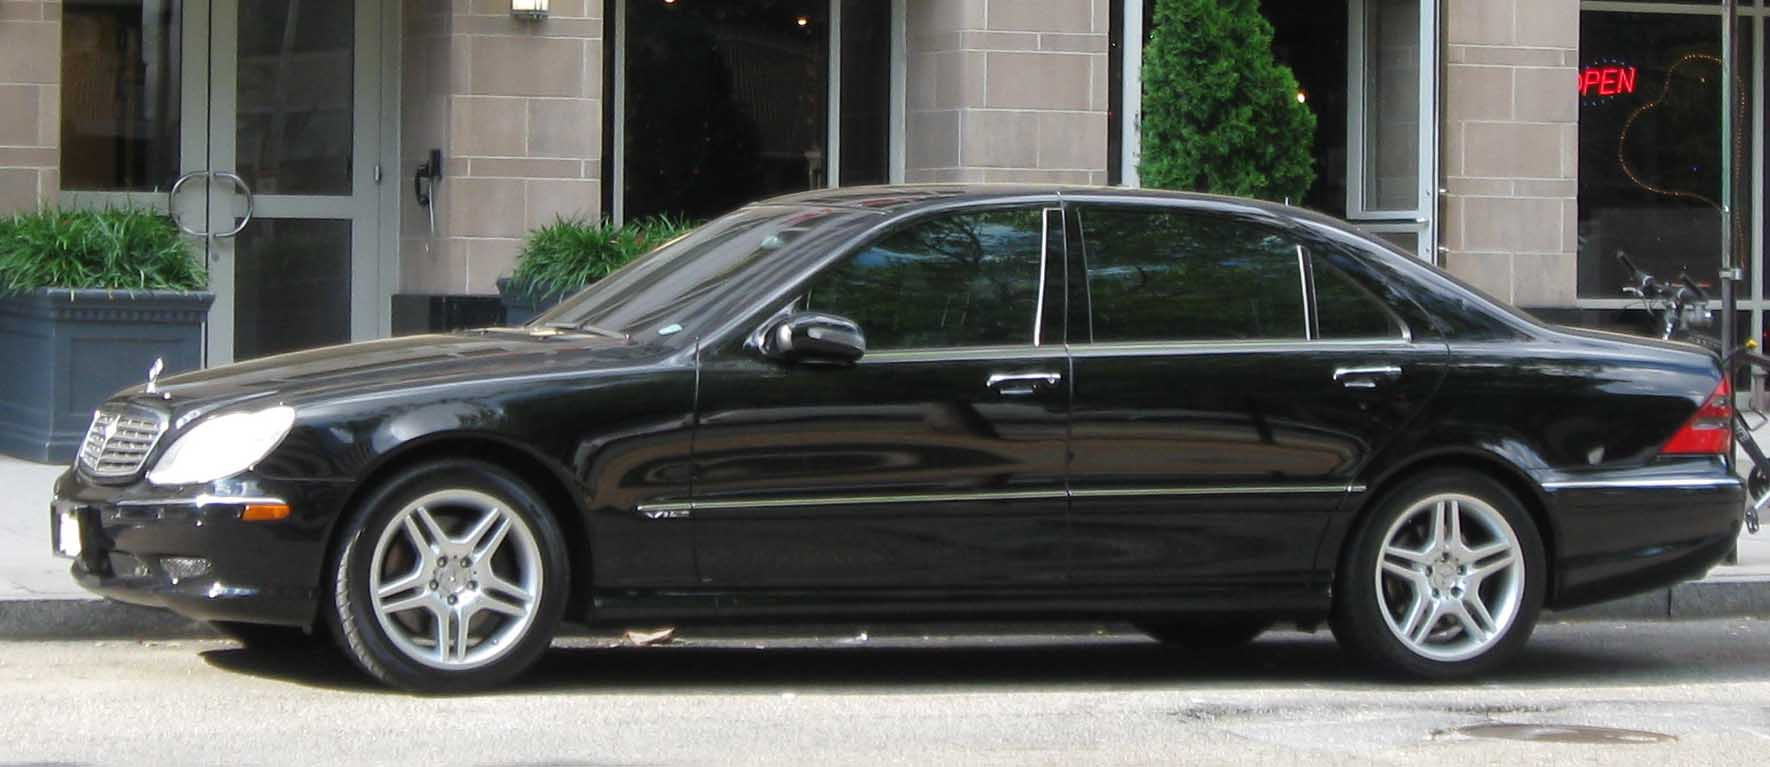 File Mercedes Benz S Class 06 22 2009 Jpg Wikimedia Commons